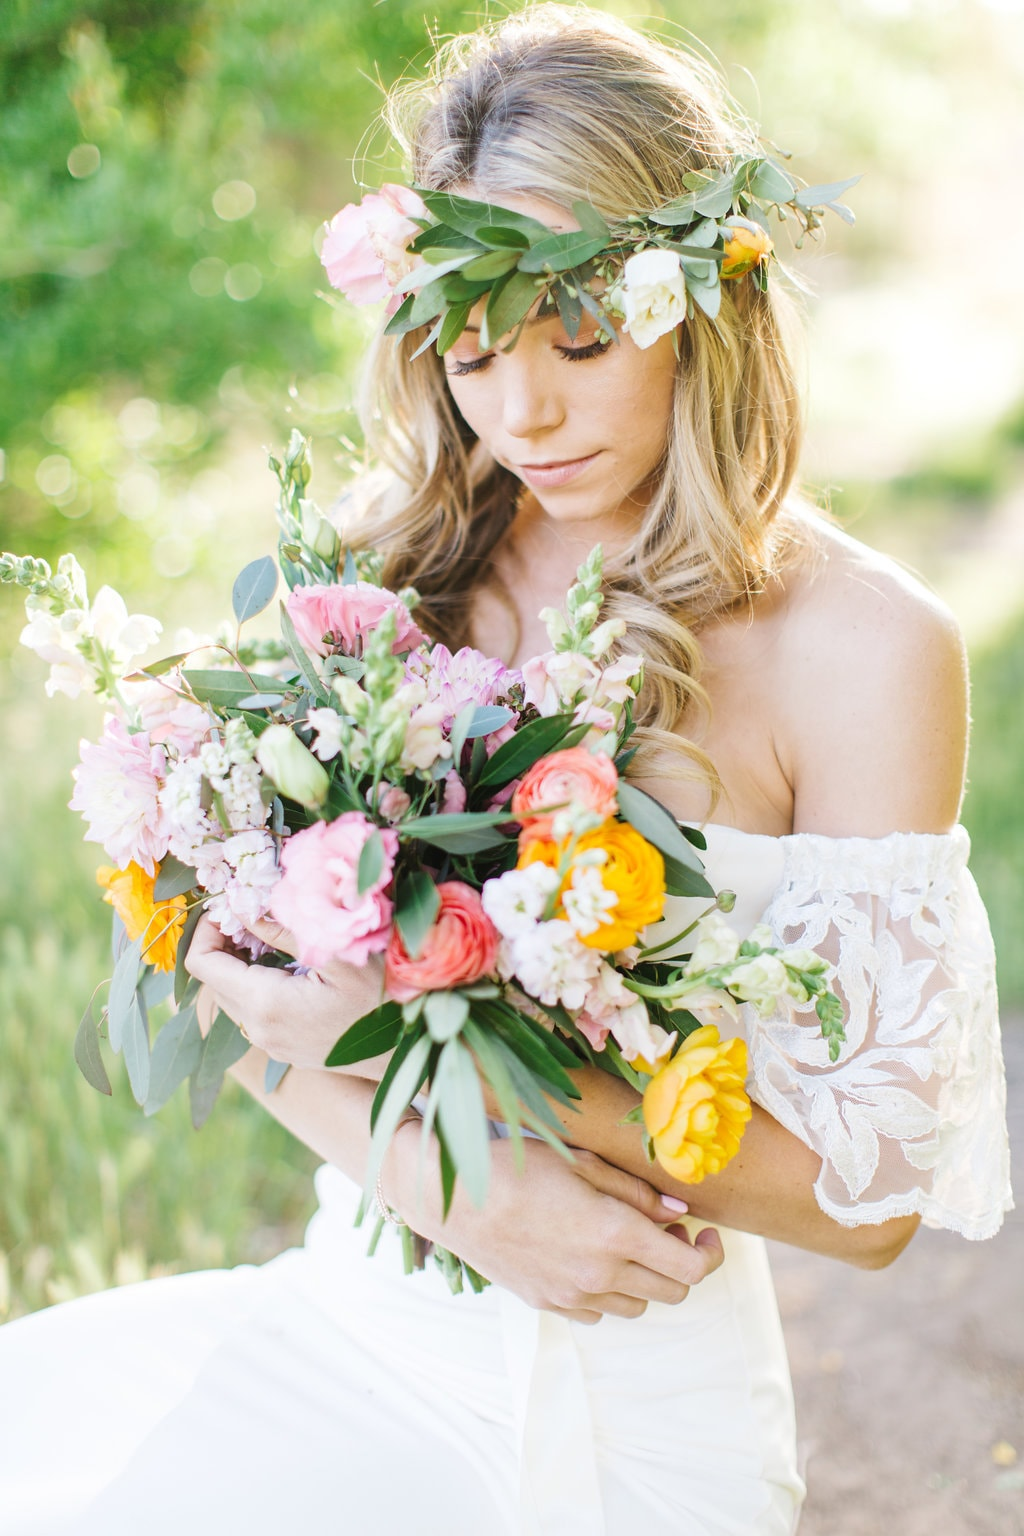 Boho Bride in Floral Crown | Credit: Julia Stockton Photography